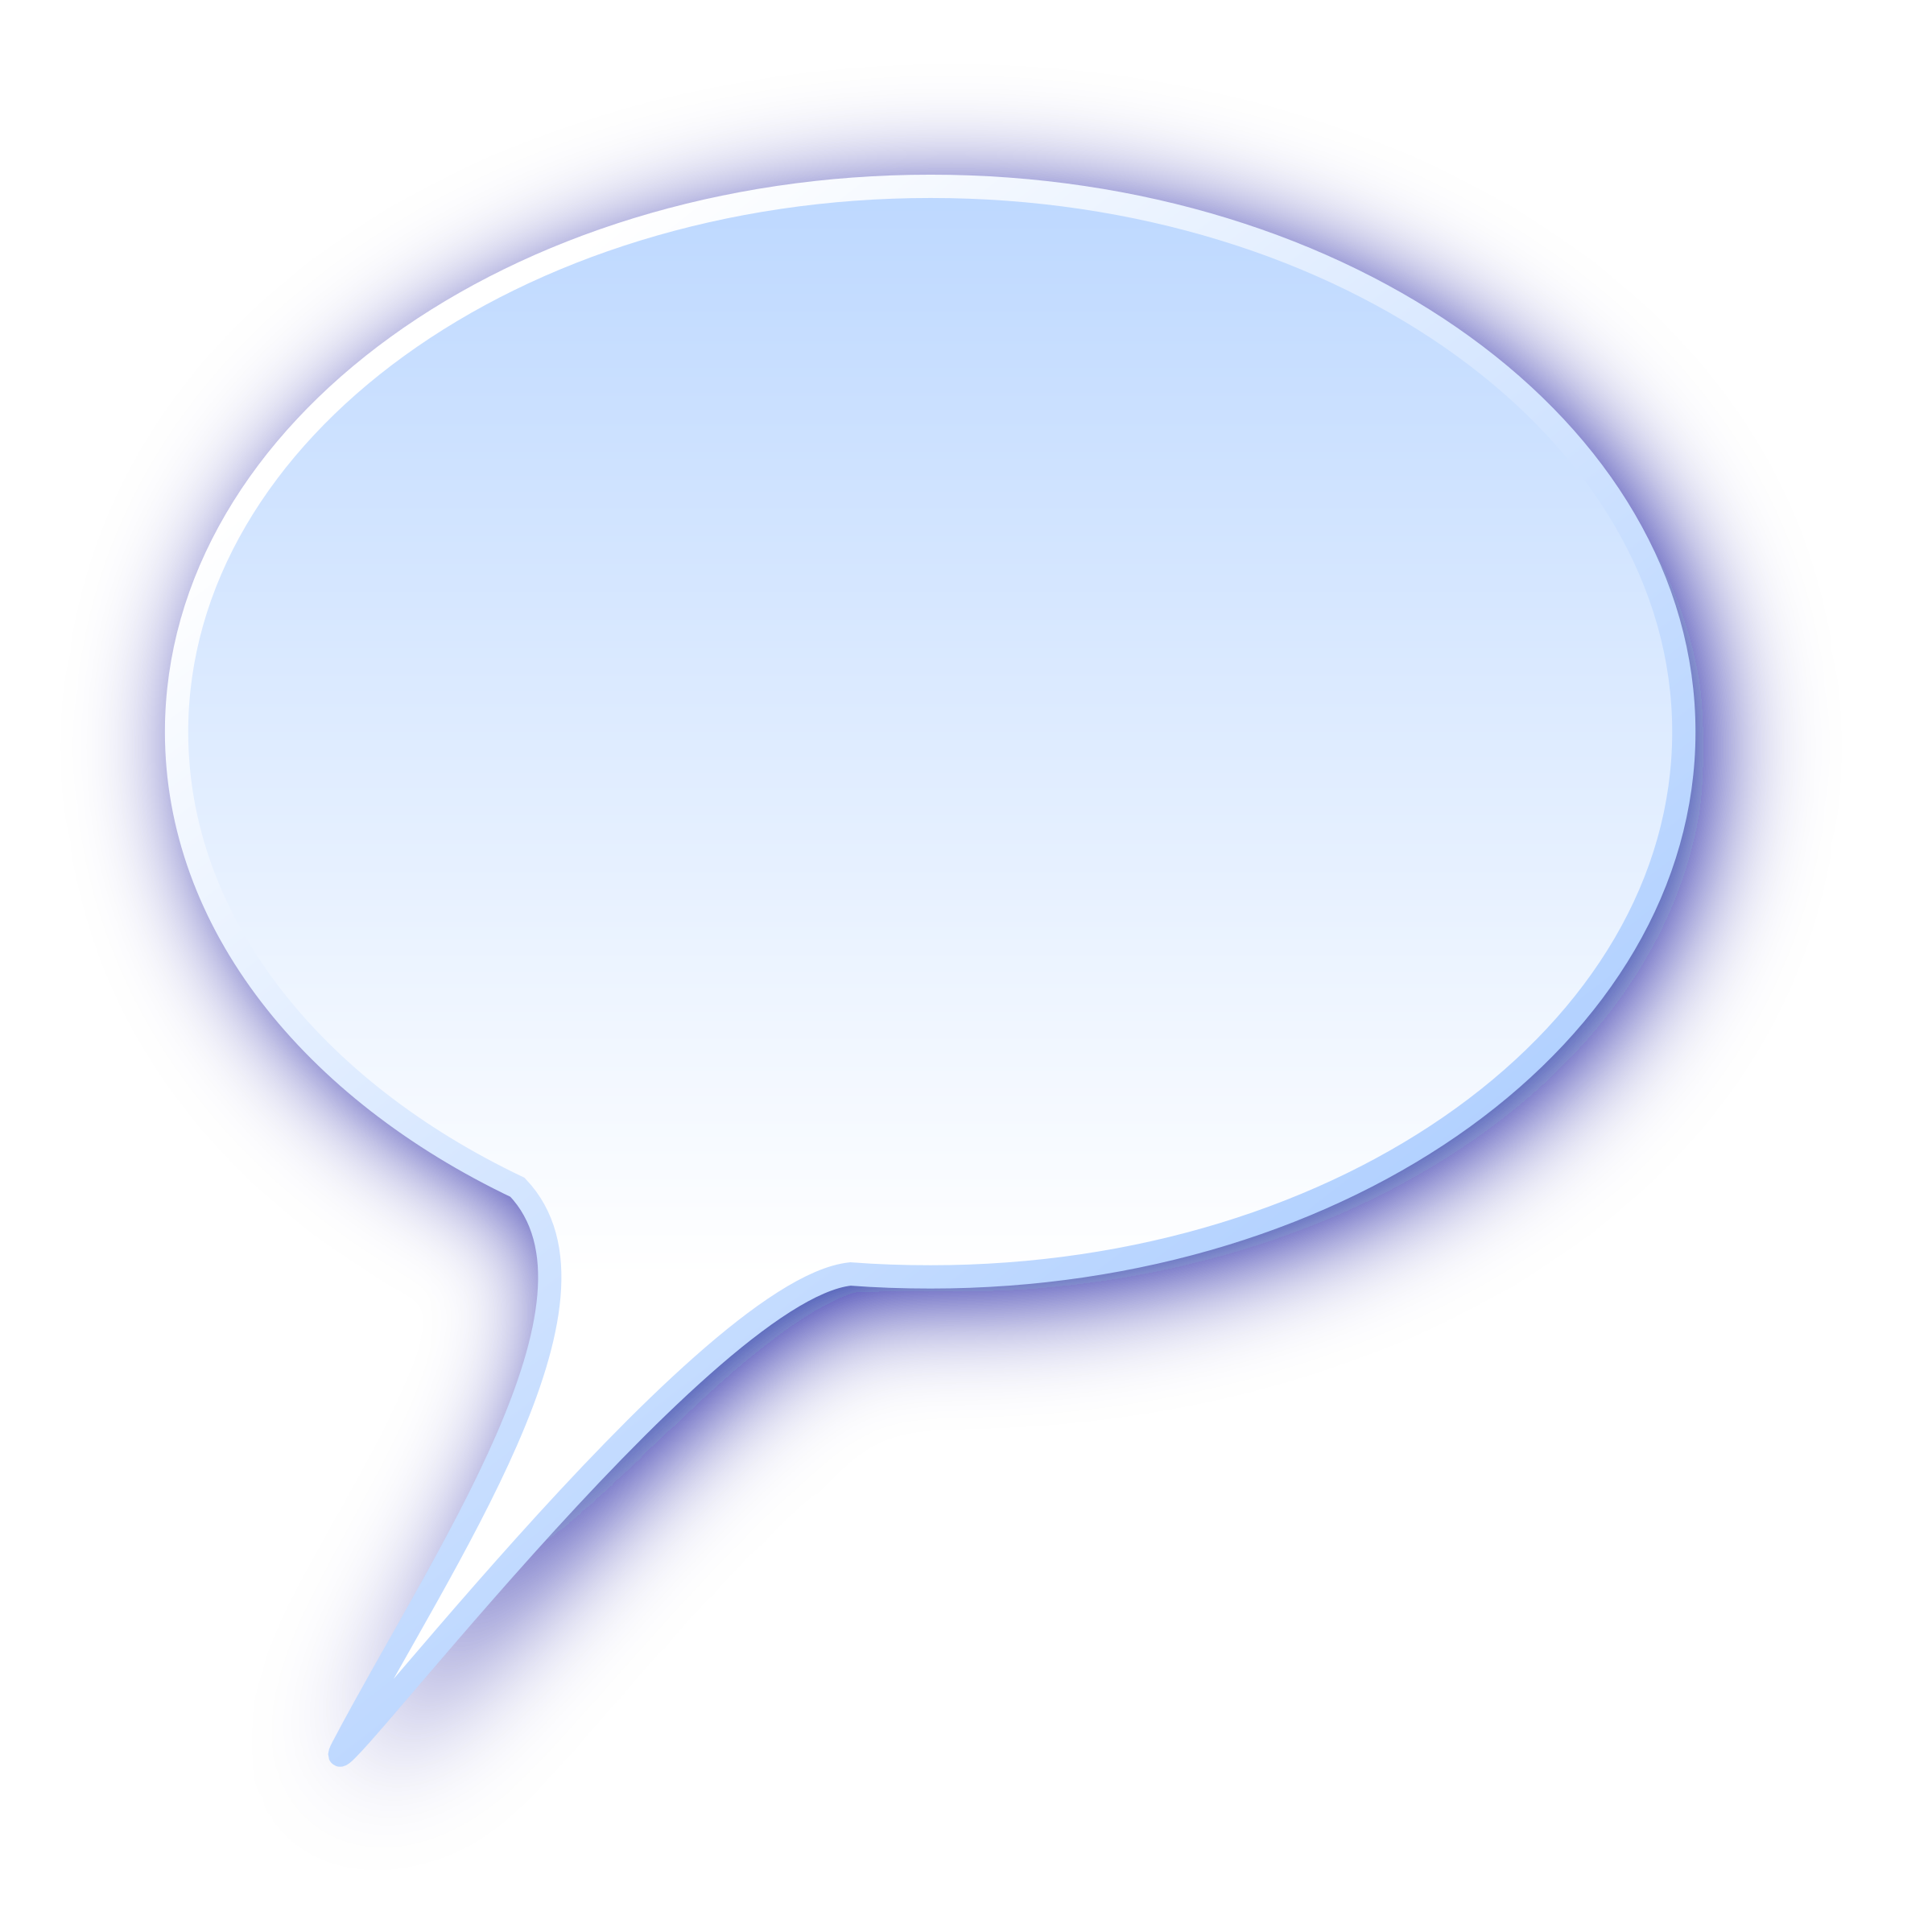 ... - 3d Rounded Speech Bubble By Demikl A Nicely Rounded Speech Bubble